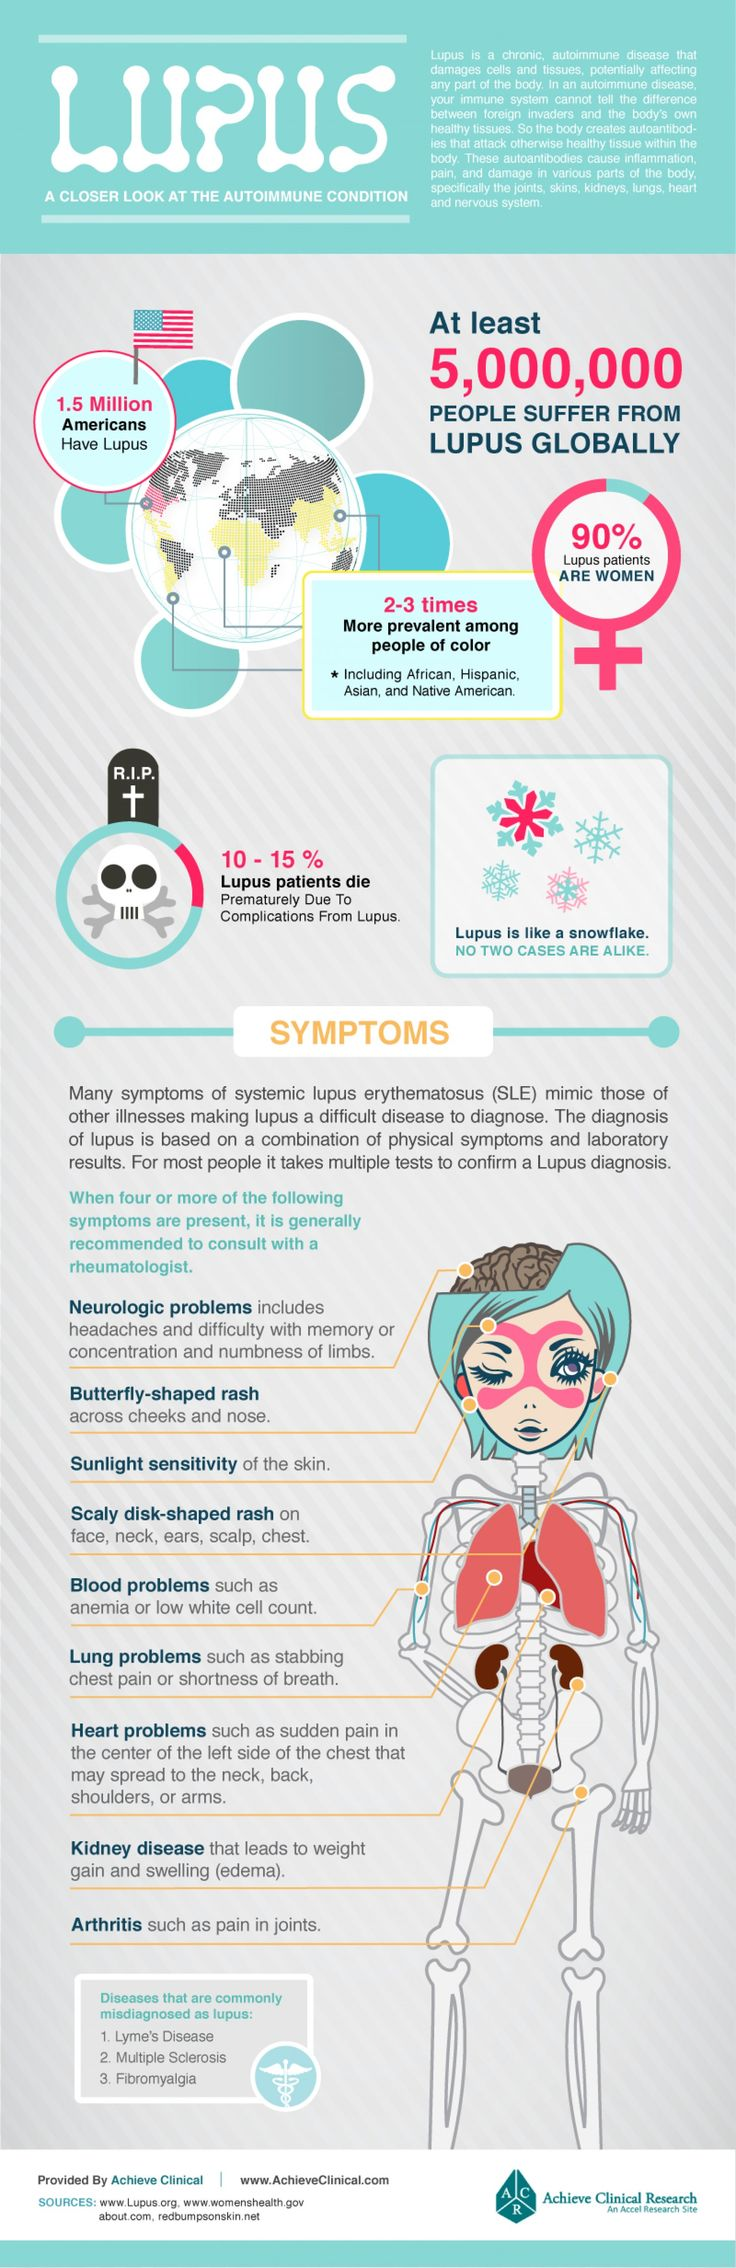 Lupus: A Closer Look At The Autoimmune Condition | New Visions Healthcare Blog #Lupusawareness #Lupus